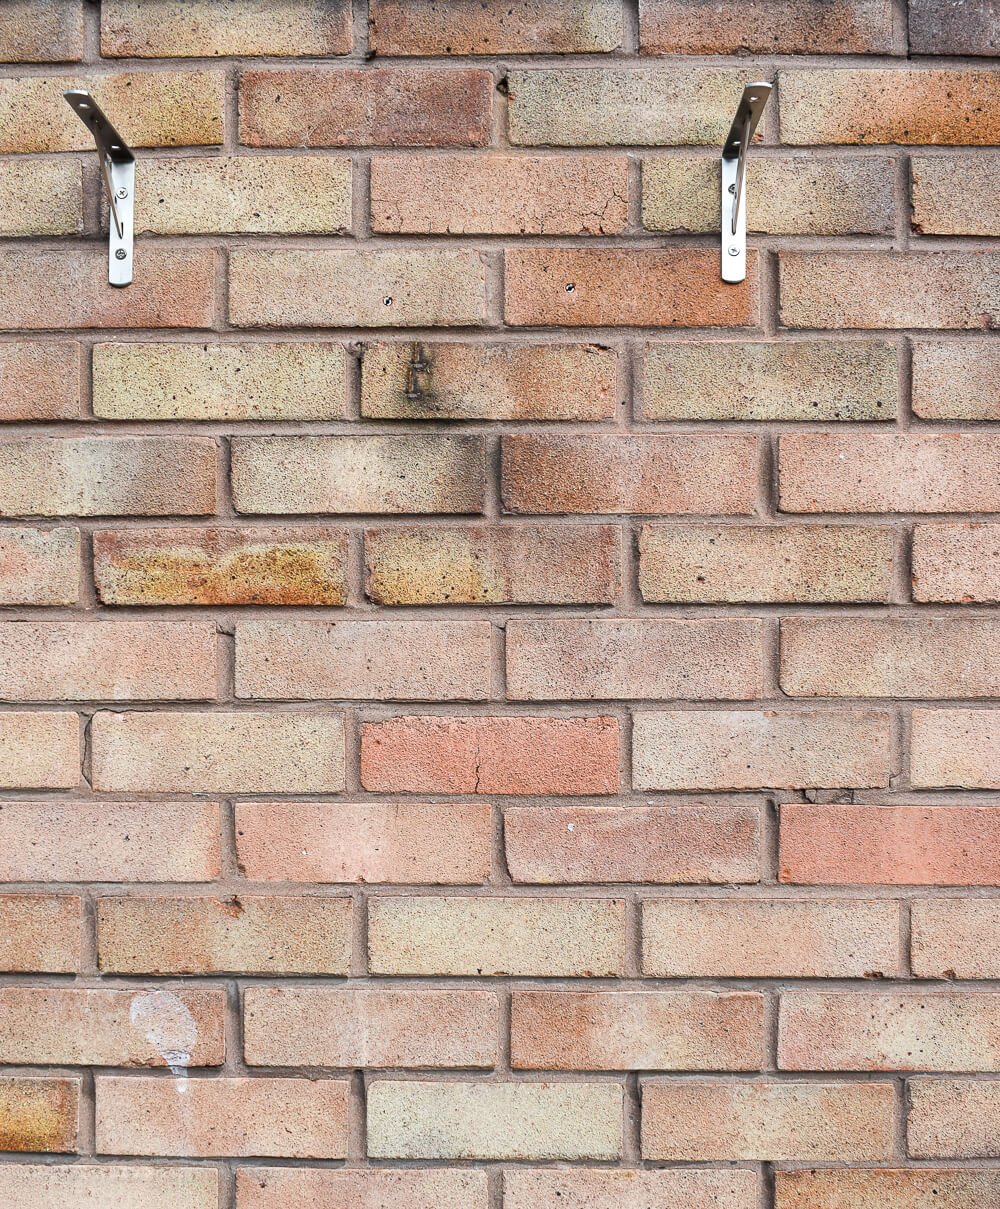 heavy duty brackets secured into brick wall